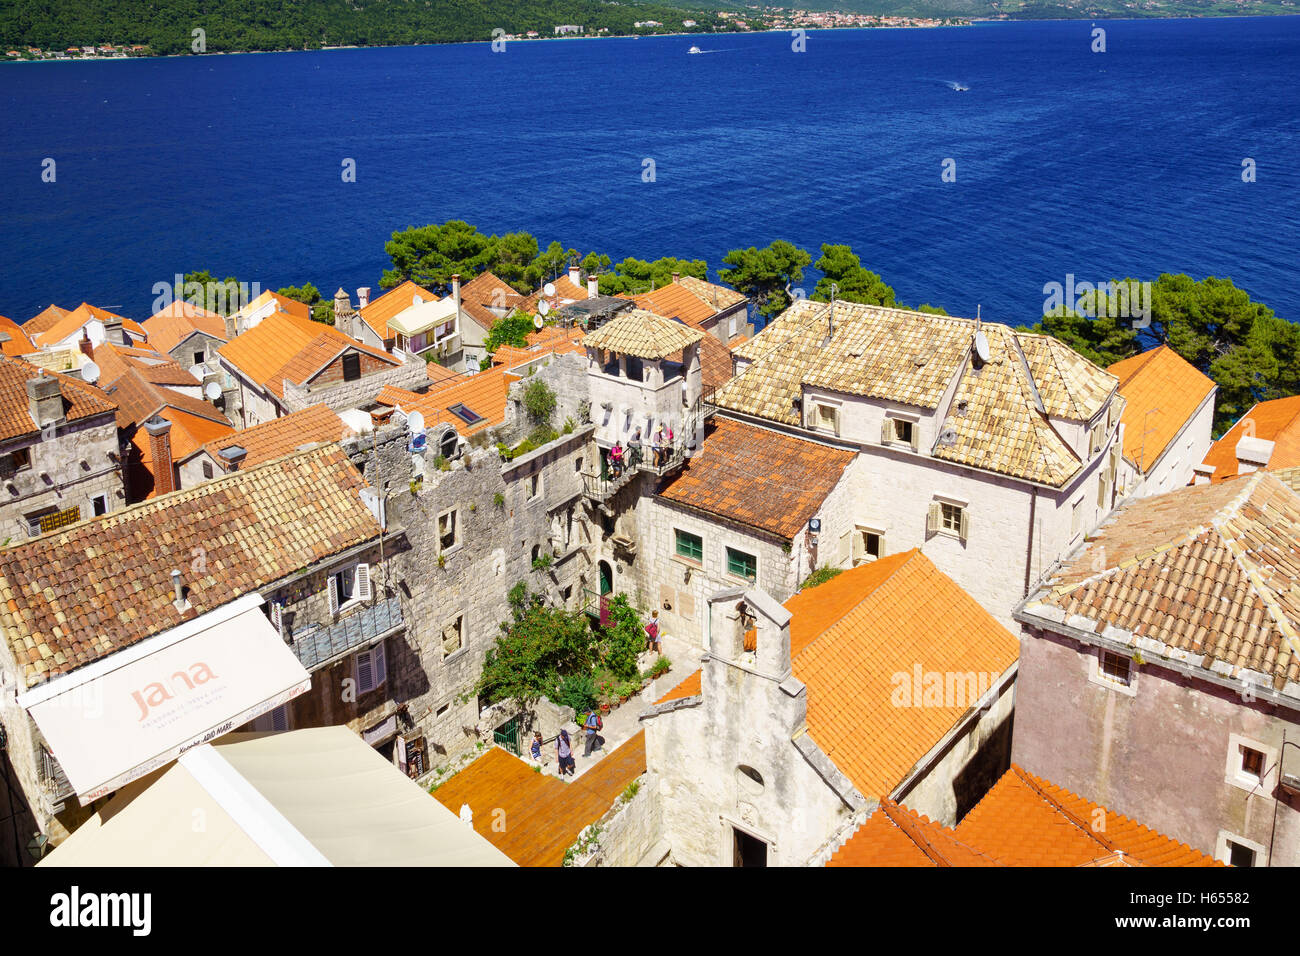 KORCULA, CROATIA - JUNE 25, 2015: Rooftop view of the old town, with the House of Maco Polo, locals and visitors, - Stock Image